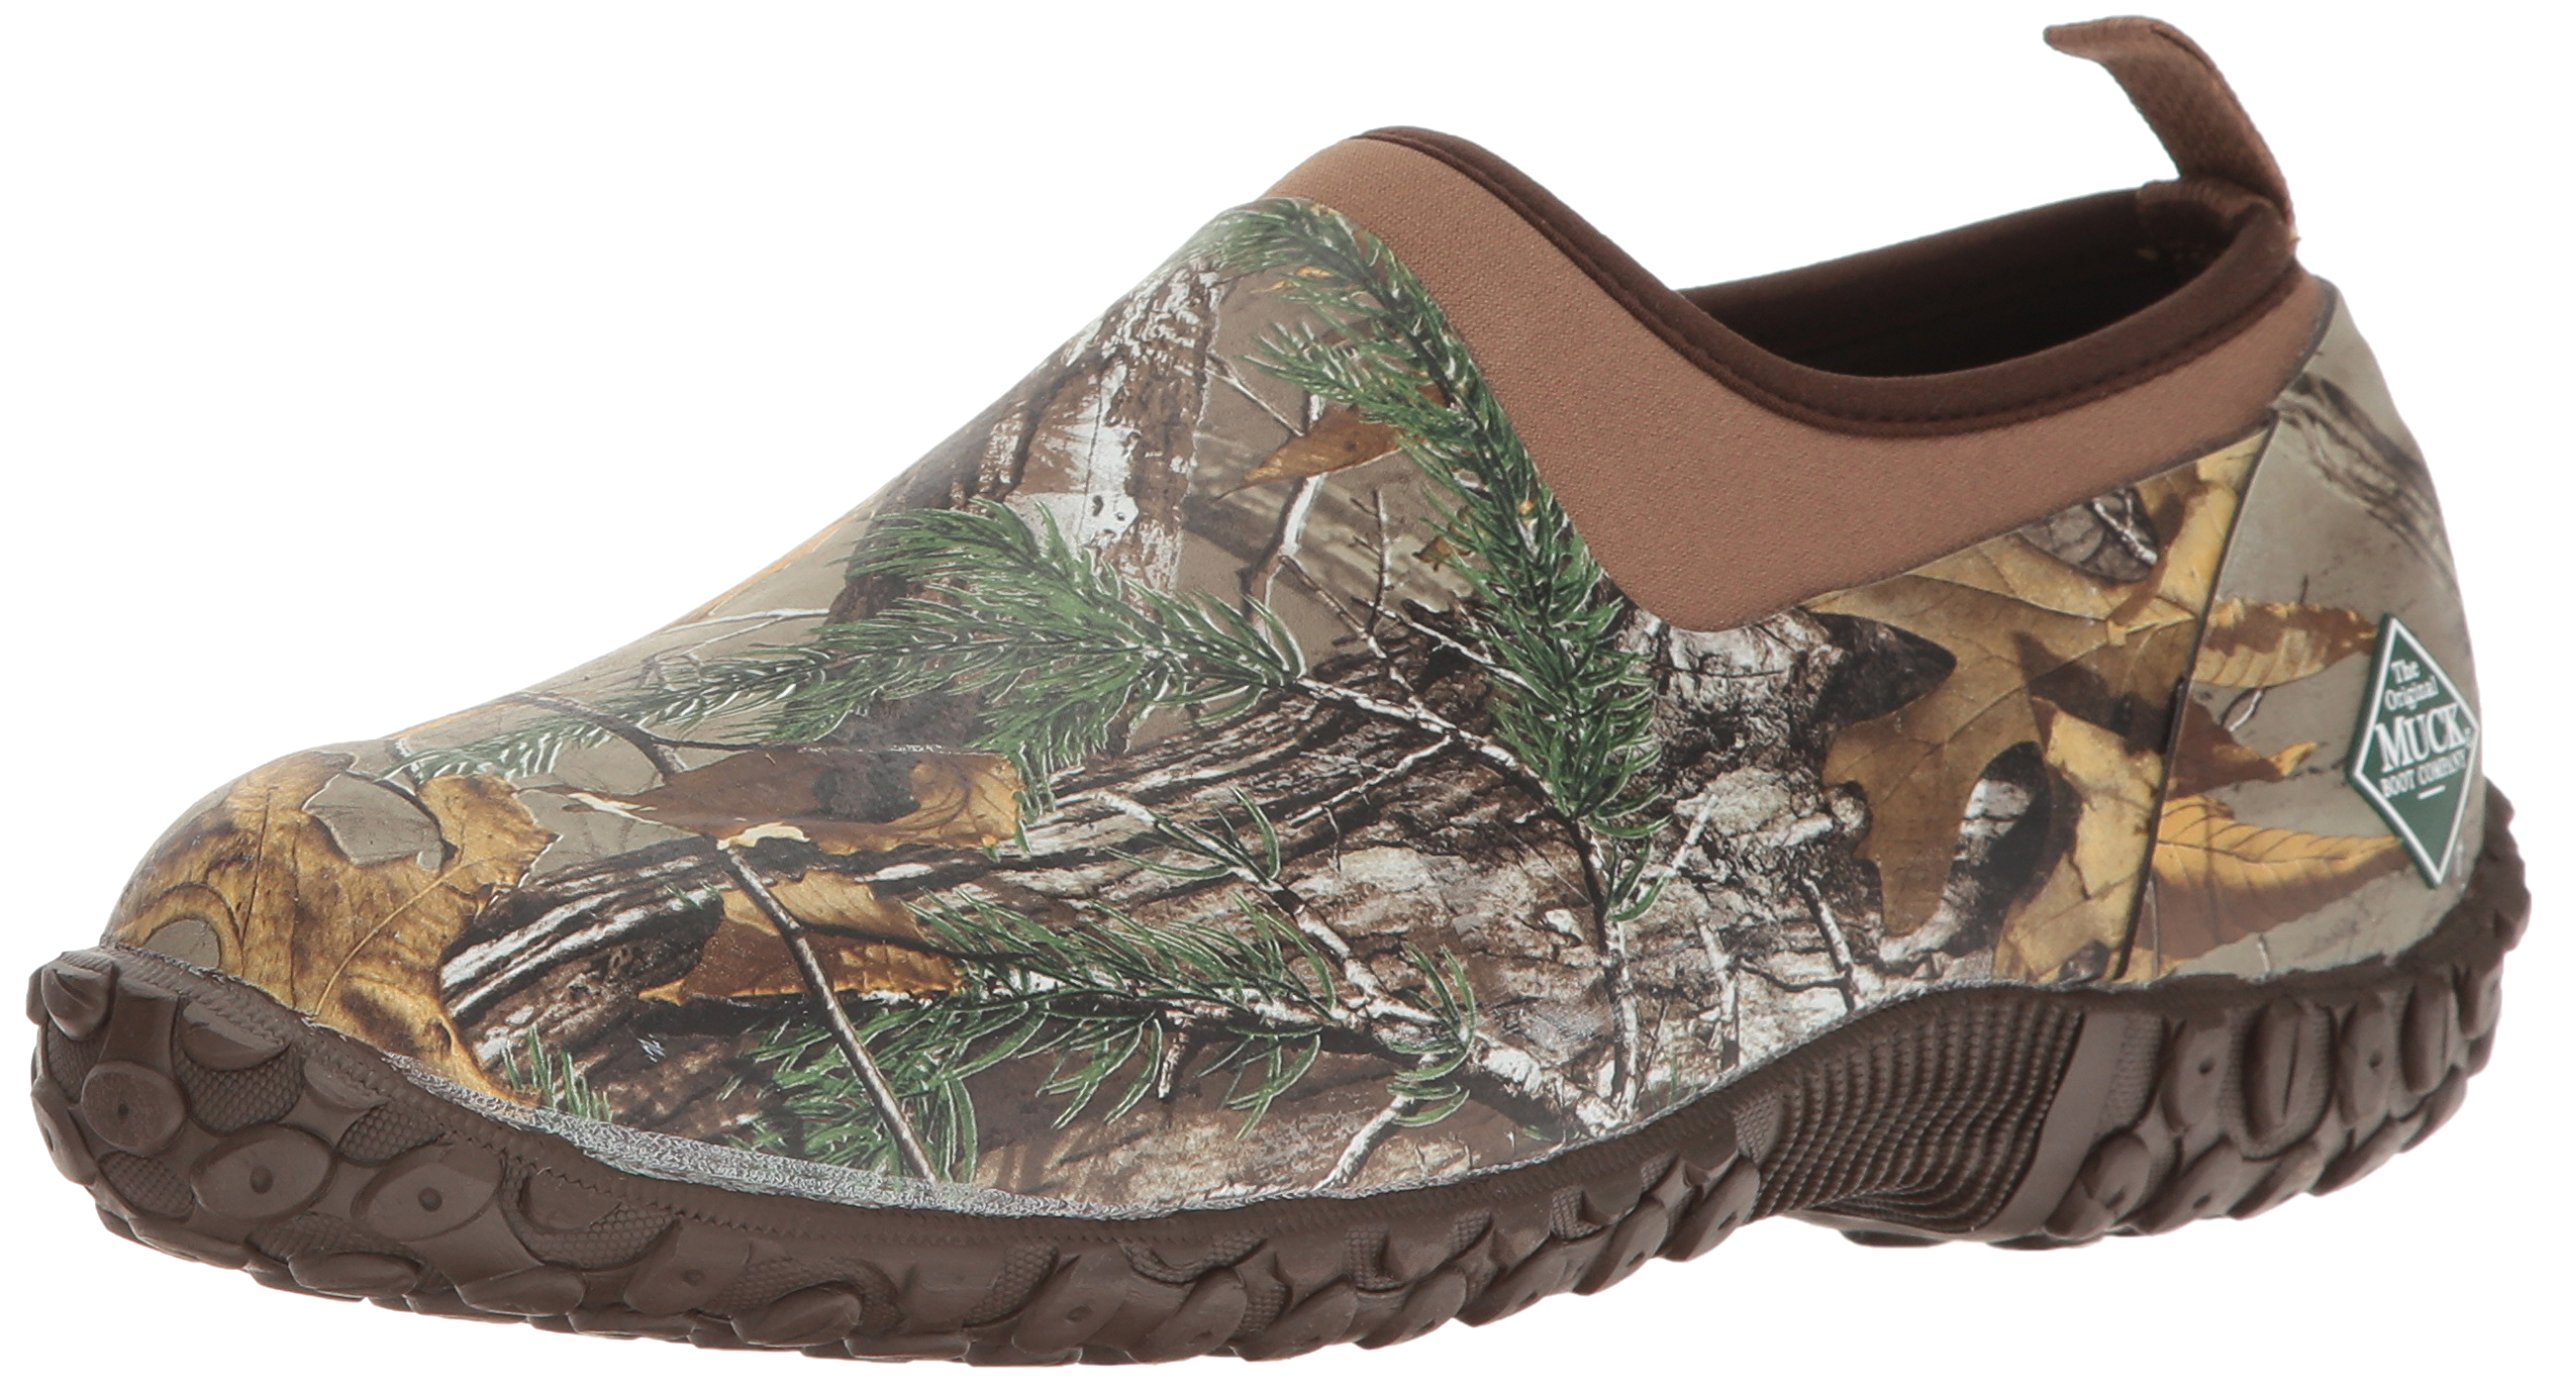 Muckster ll Men's Rubber Garden Shoes,Realtree XTRA,8 US/8-8.5 M US by Muck Boot